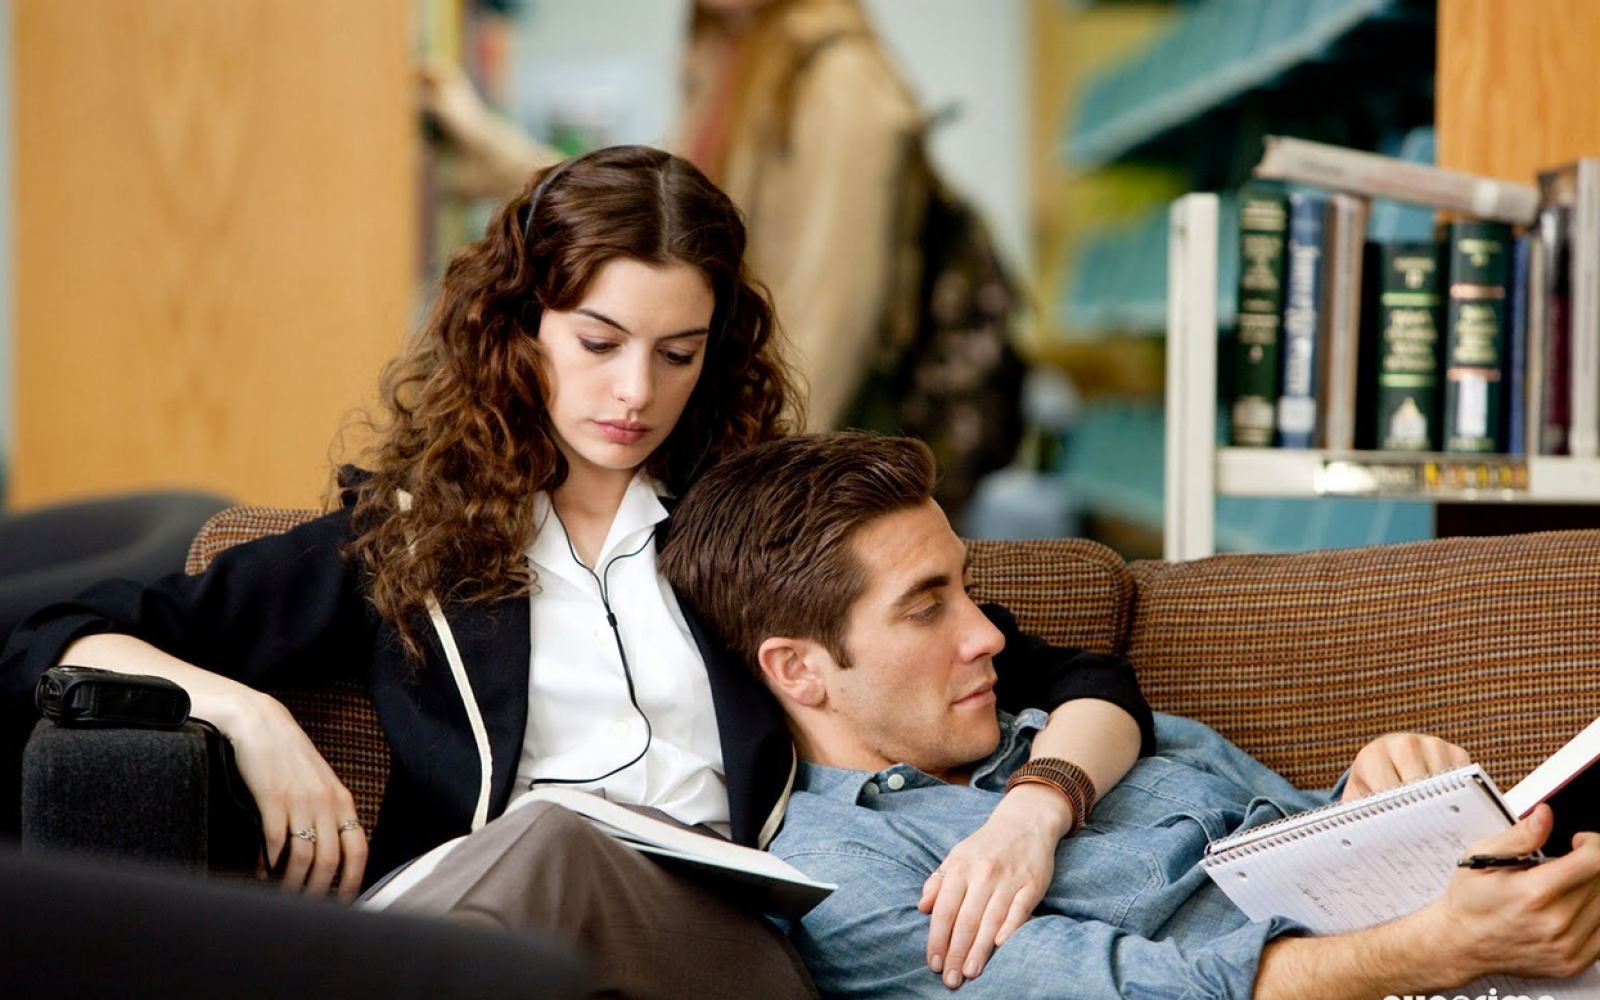 11 Of The Best Quotes From 'Love & Other Drugs'